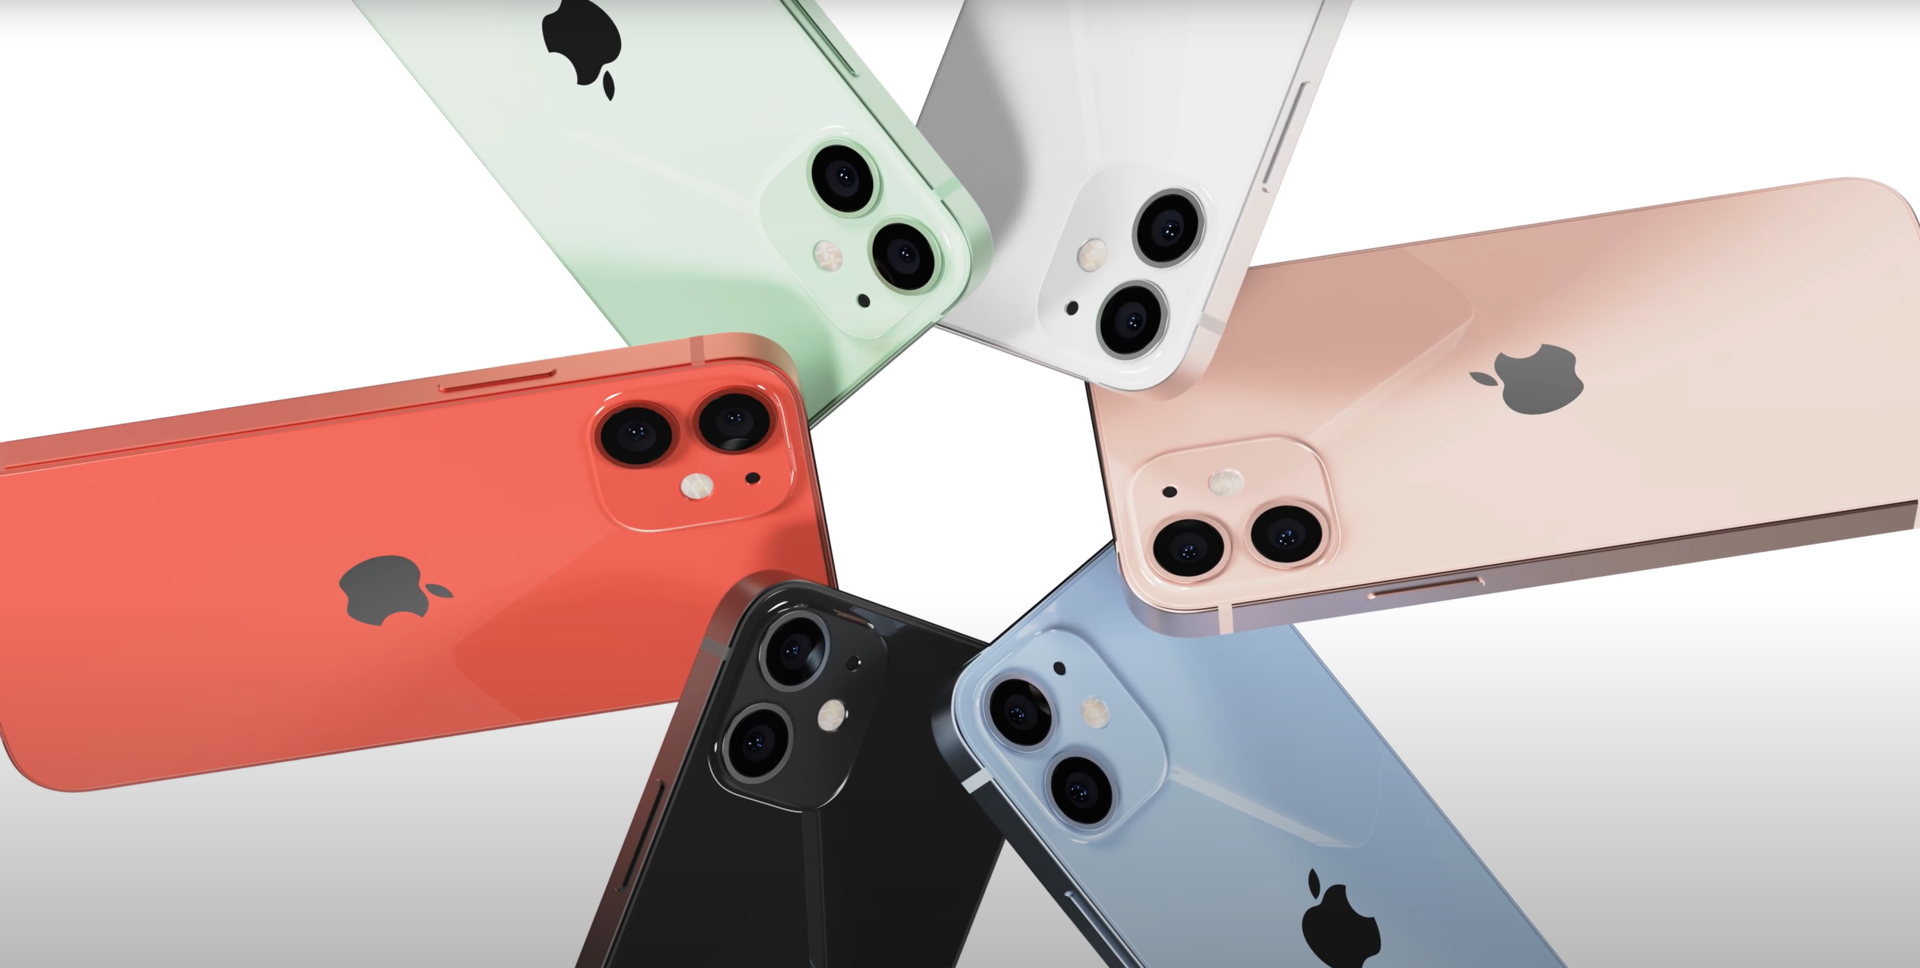 The iPhone 12 Pro Max may have better ultra-wide and tele